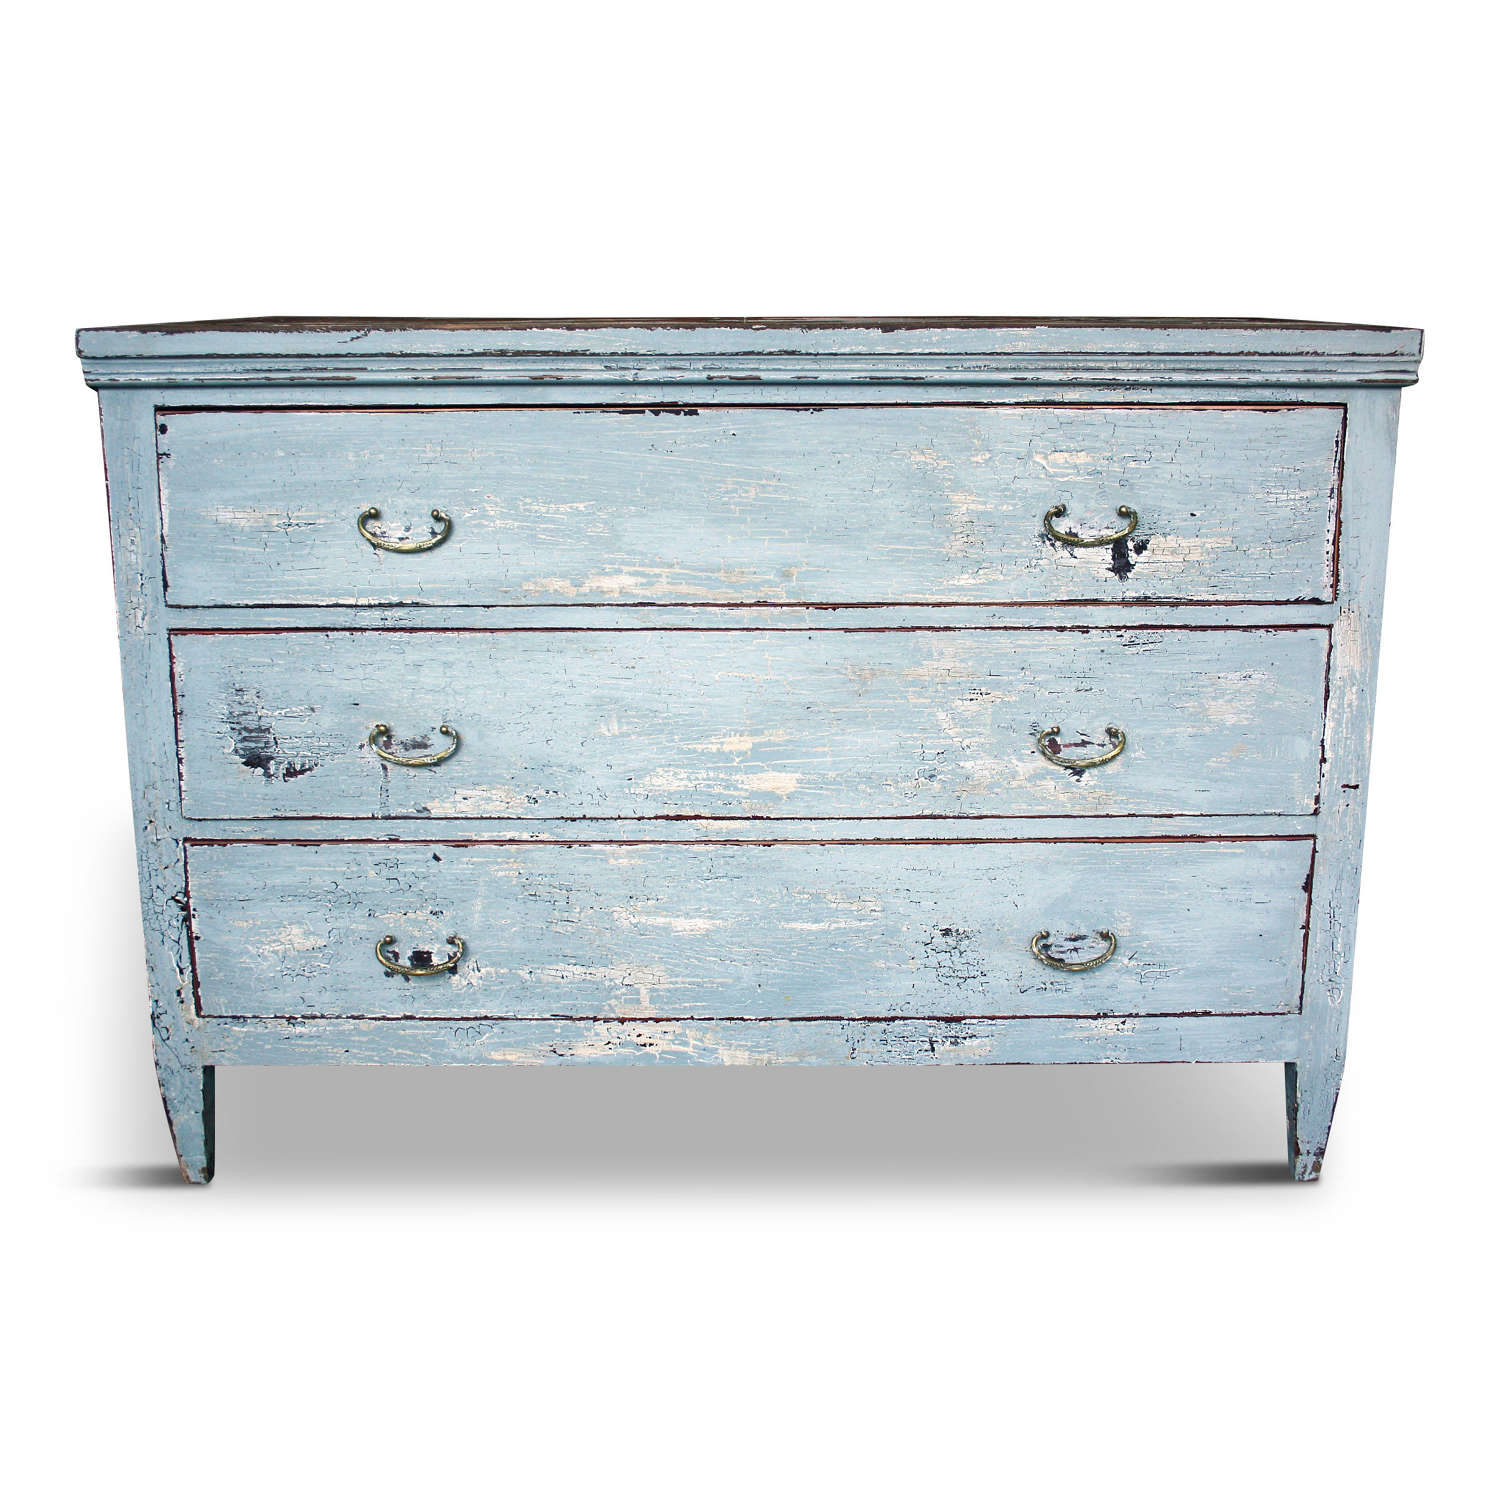 20th Century Painted Chest of Drawers